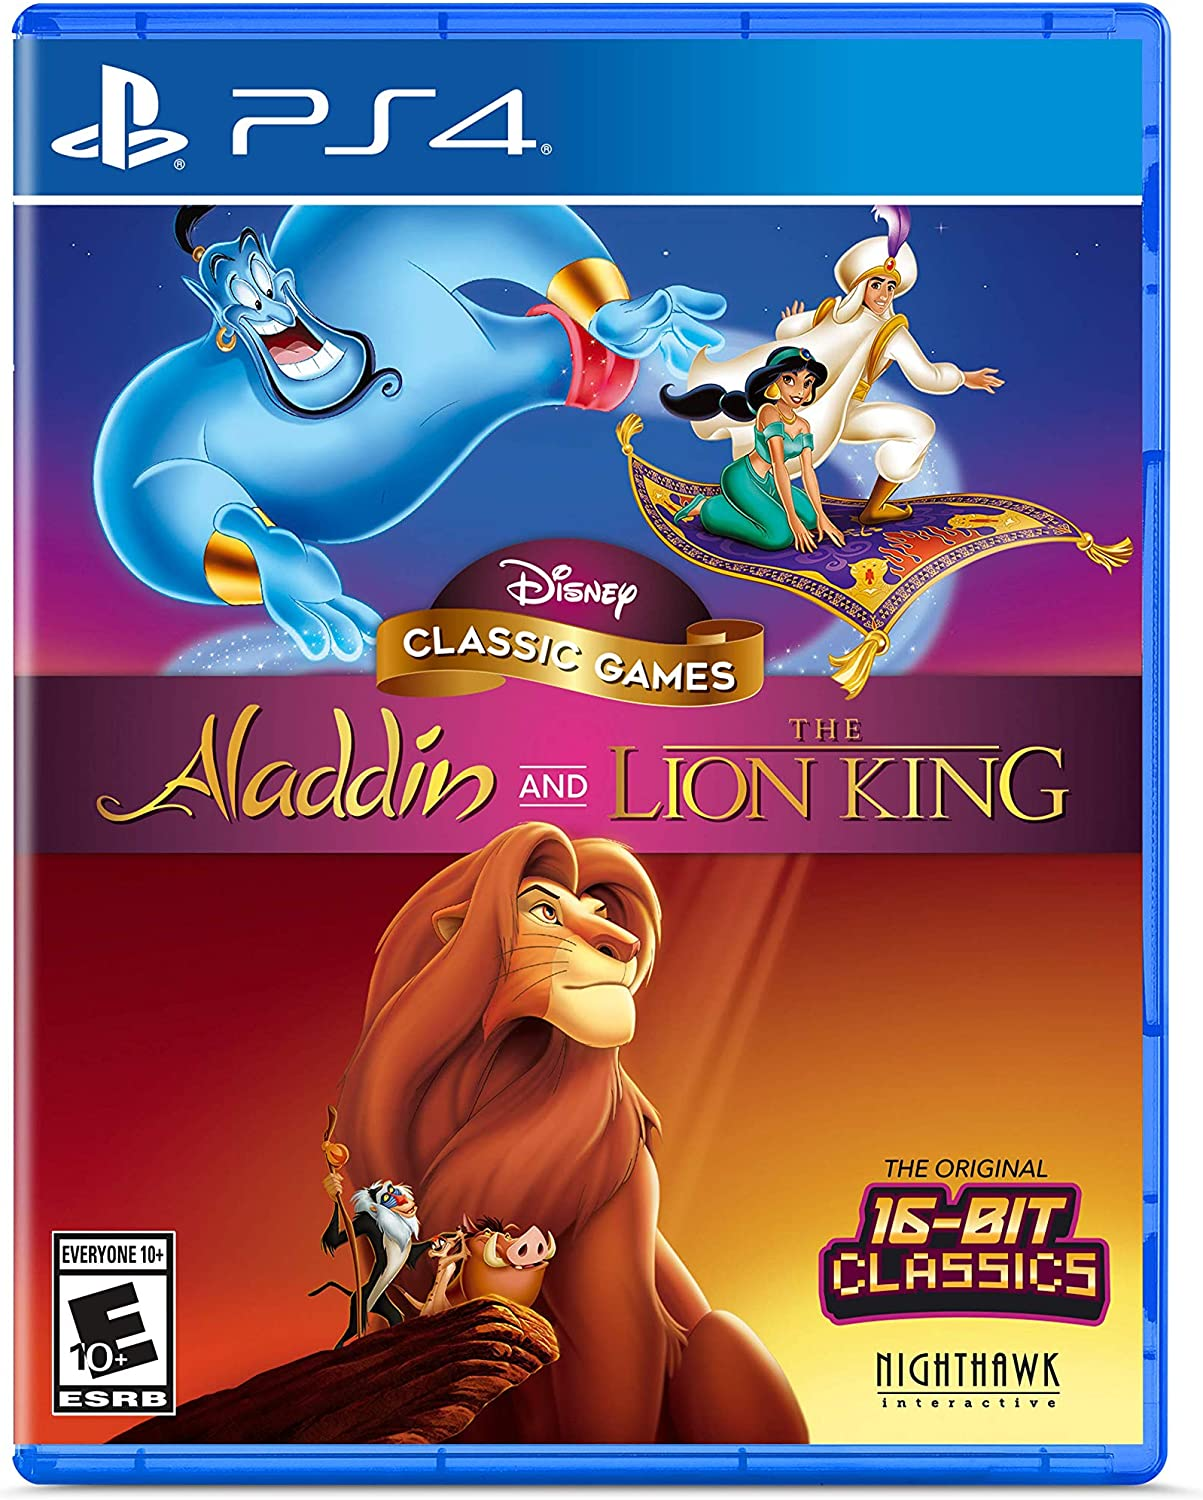 Amazon.com: Disney Classic Games: Aladdin and The Lion King ...